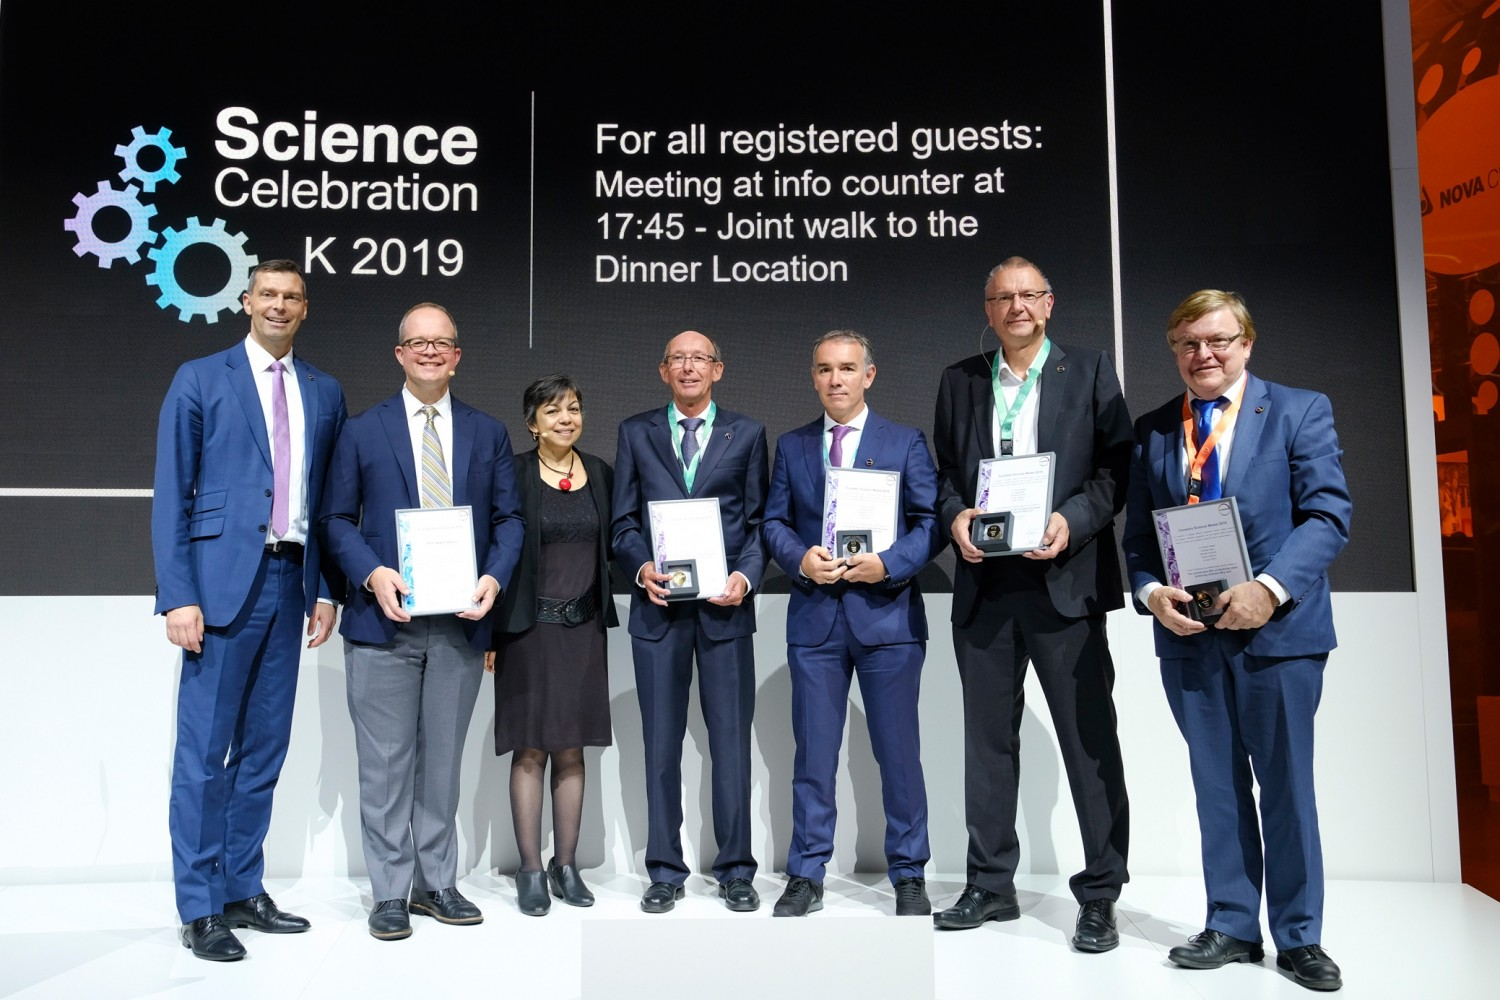 Covestro Science Celebration at K-2019